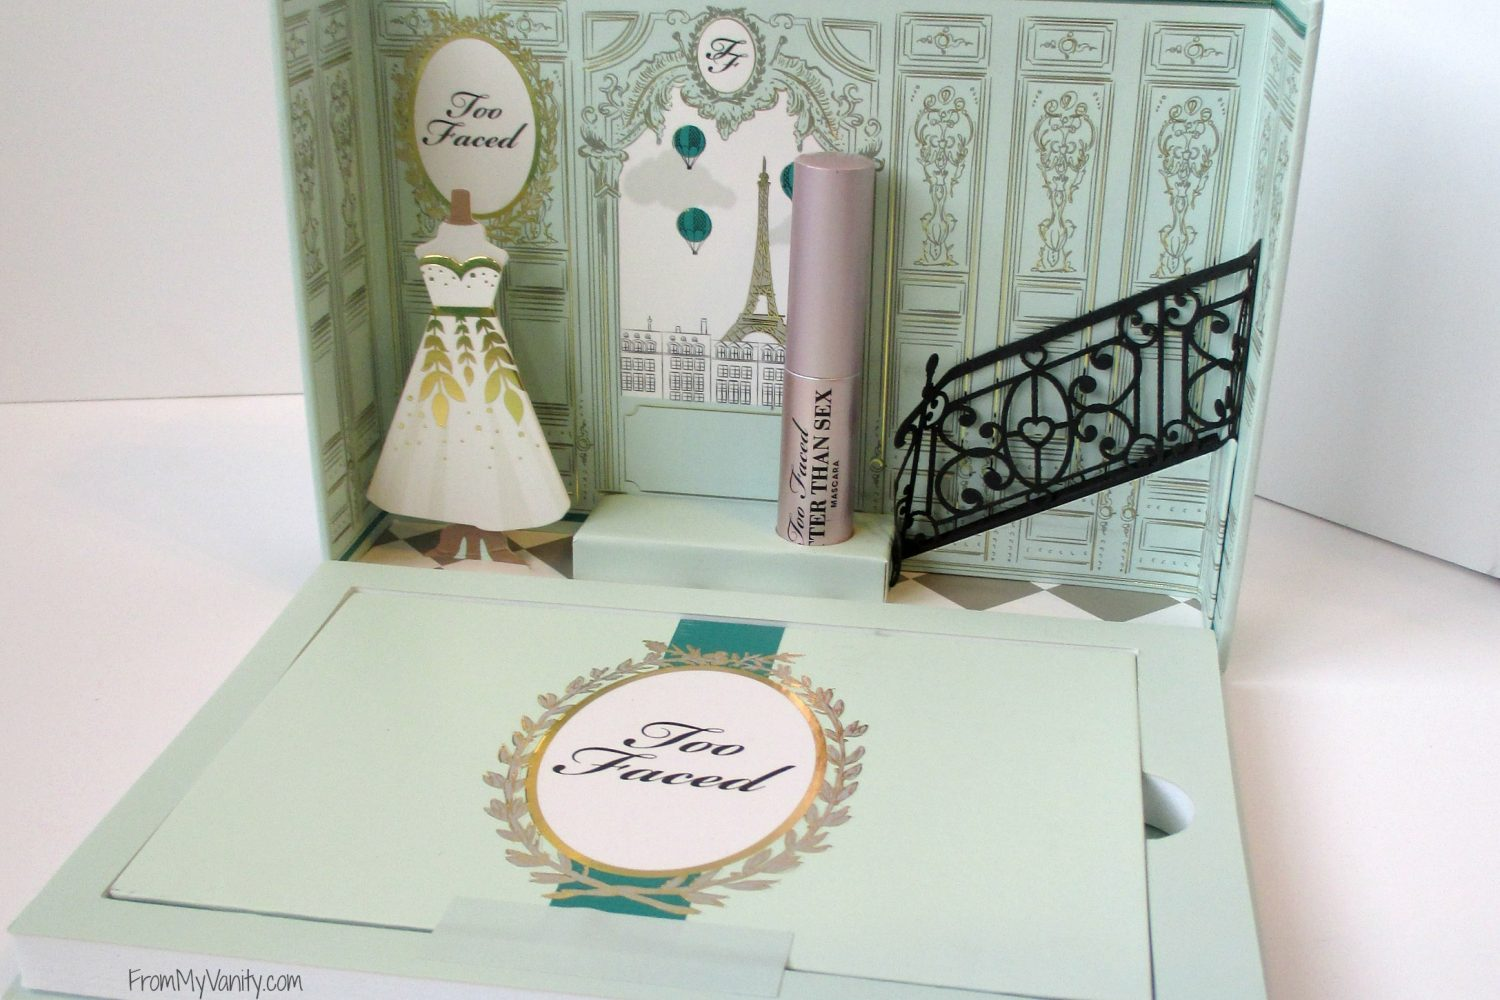 Too Faced La Petite Maison // Holiday Set // Review & Swatches // Opened Box // #UltaBeauty #TooFaced FromMyVanity.com